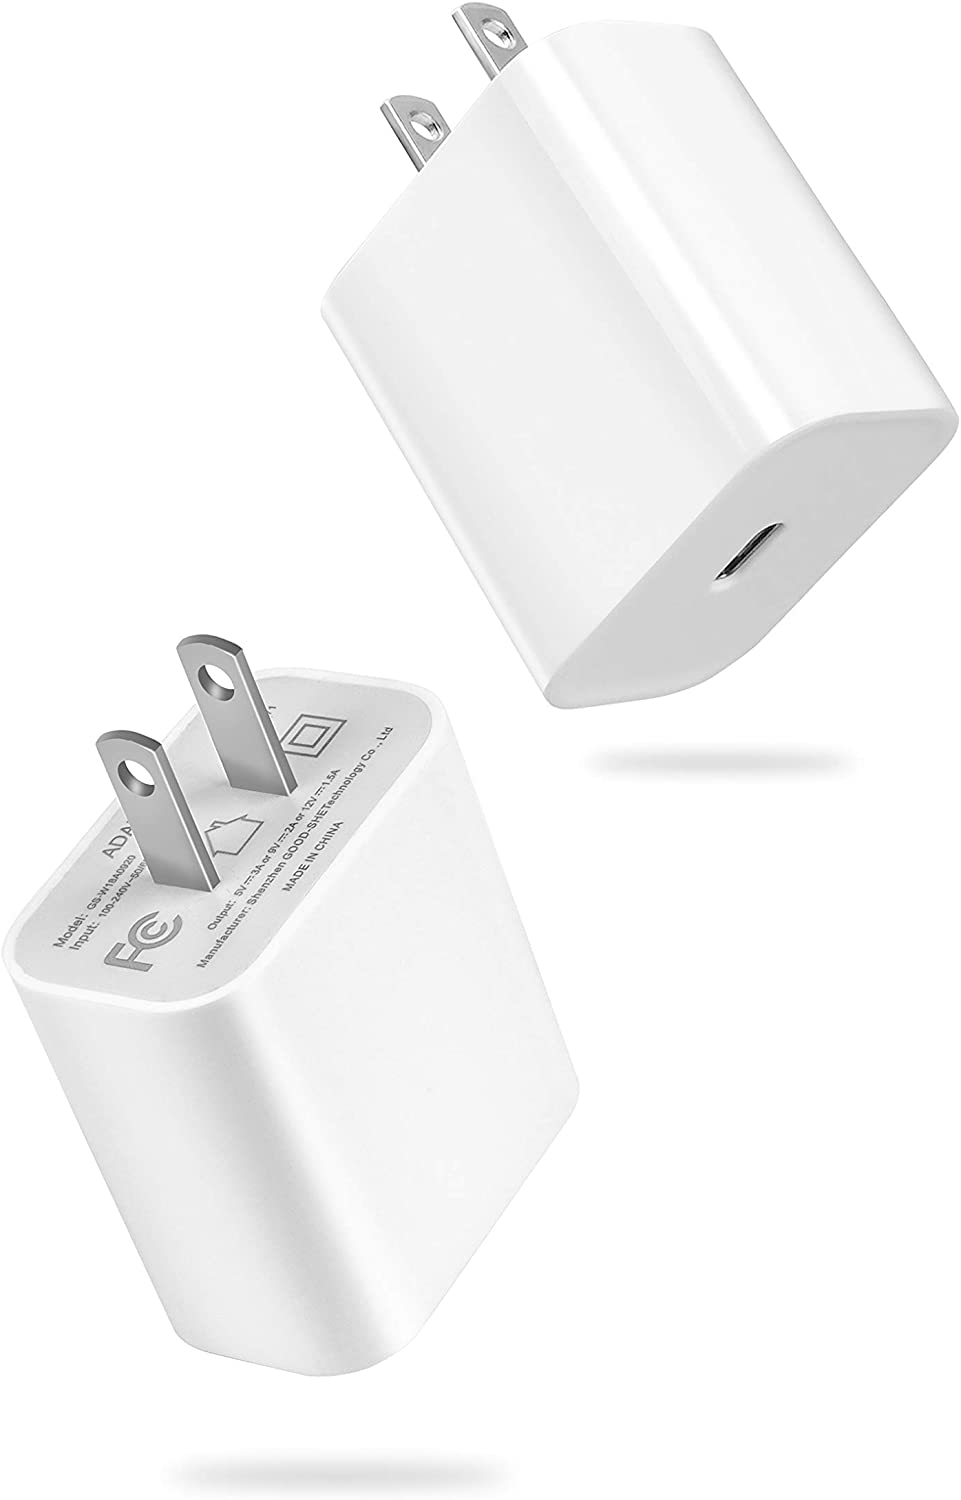 20W USB-C Power Adapter Compatible with iPhone 12/12 Pro/12 Pro Max/12 Mini/11, Fast USB Type C PD Charger for AirPods Pro, iPad Pro, Pixel 4/3 Charger Block-2 Pack